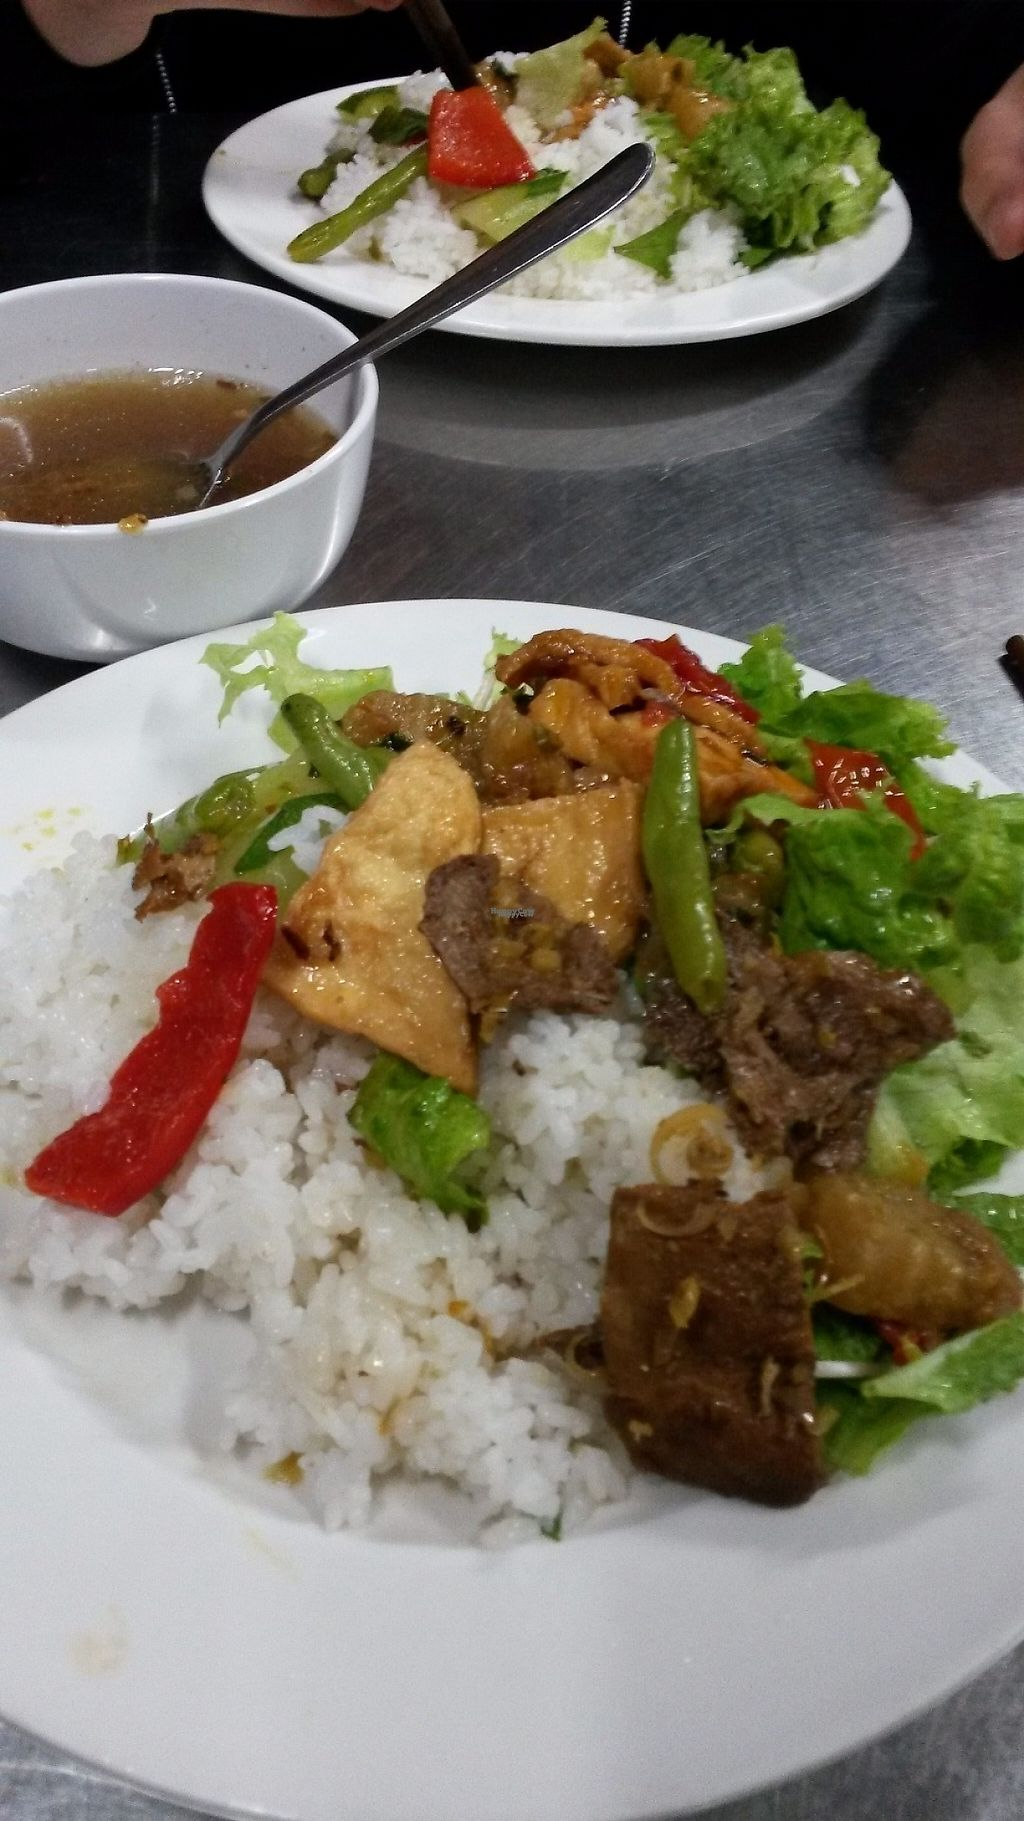 """Photo of Chua Tu Lam  by <a href=""""/members/profile/Blupi"""">Blupi</a> <br/>Ask for a plate: if you don't specify what you want in she gonna put a bit of everything. perfect to discover this food! <br/> April 27, 2017  - <a href='/contact/abuse/image/91124/253063'>Report</a>"""